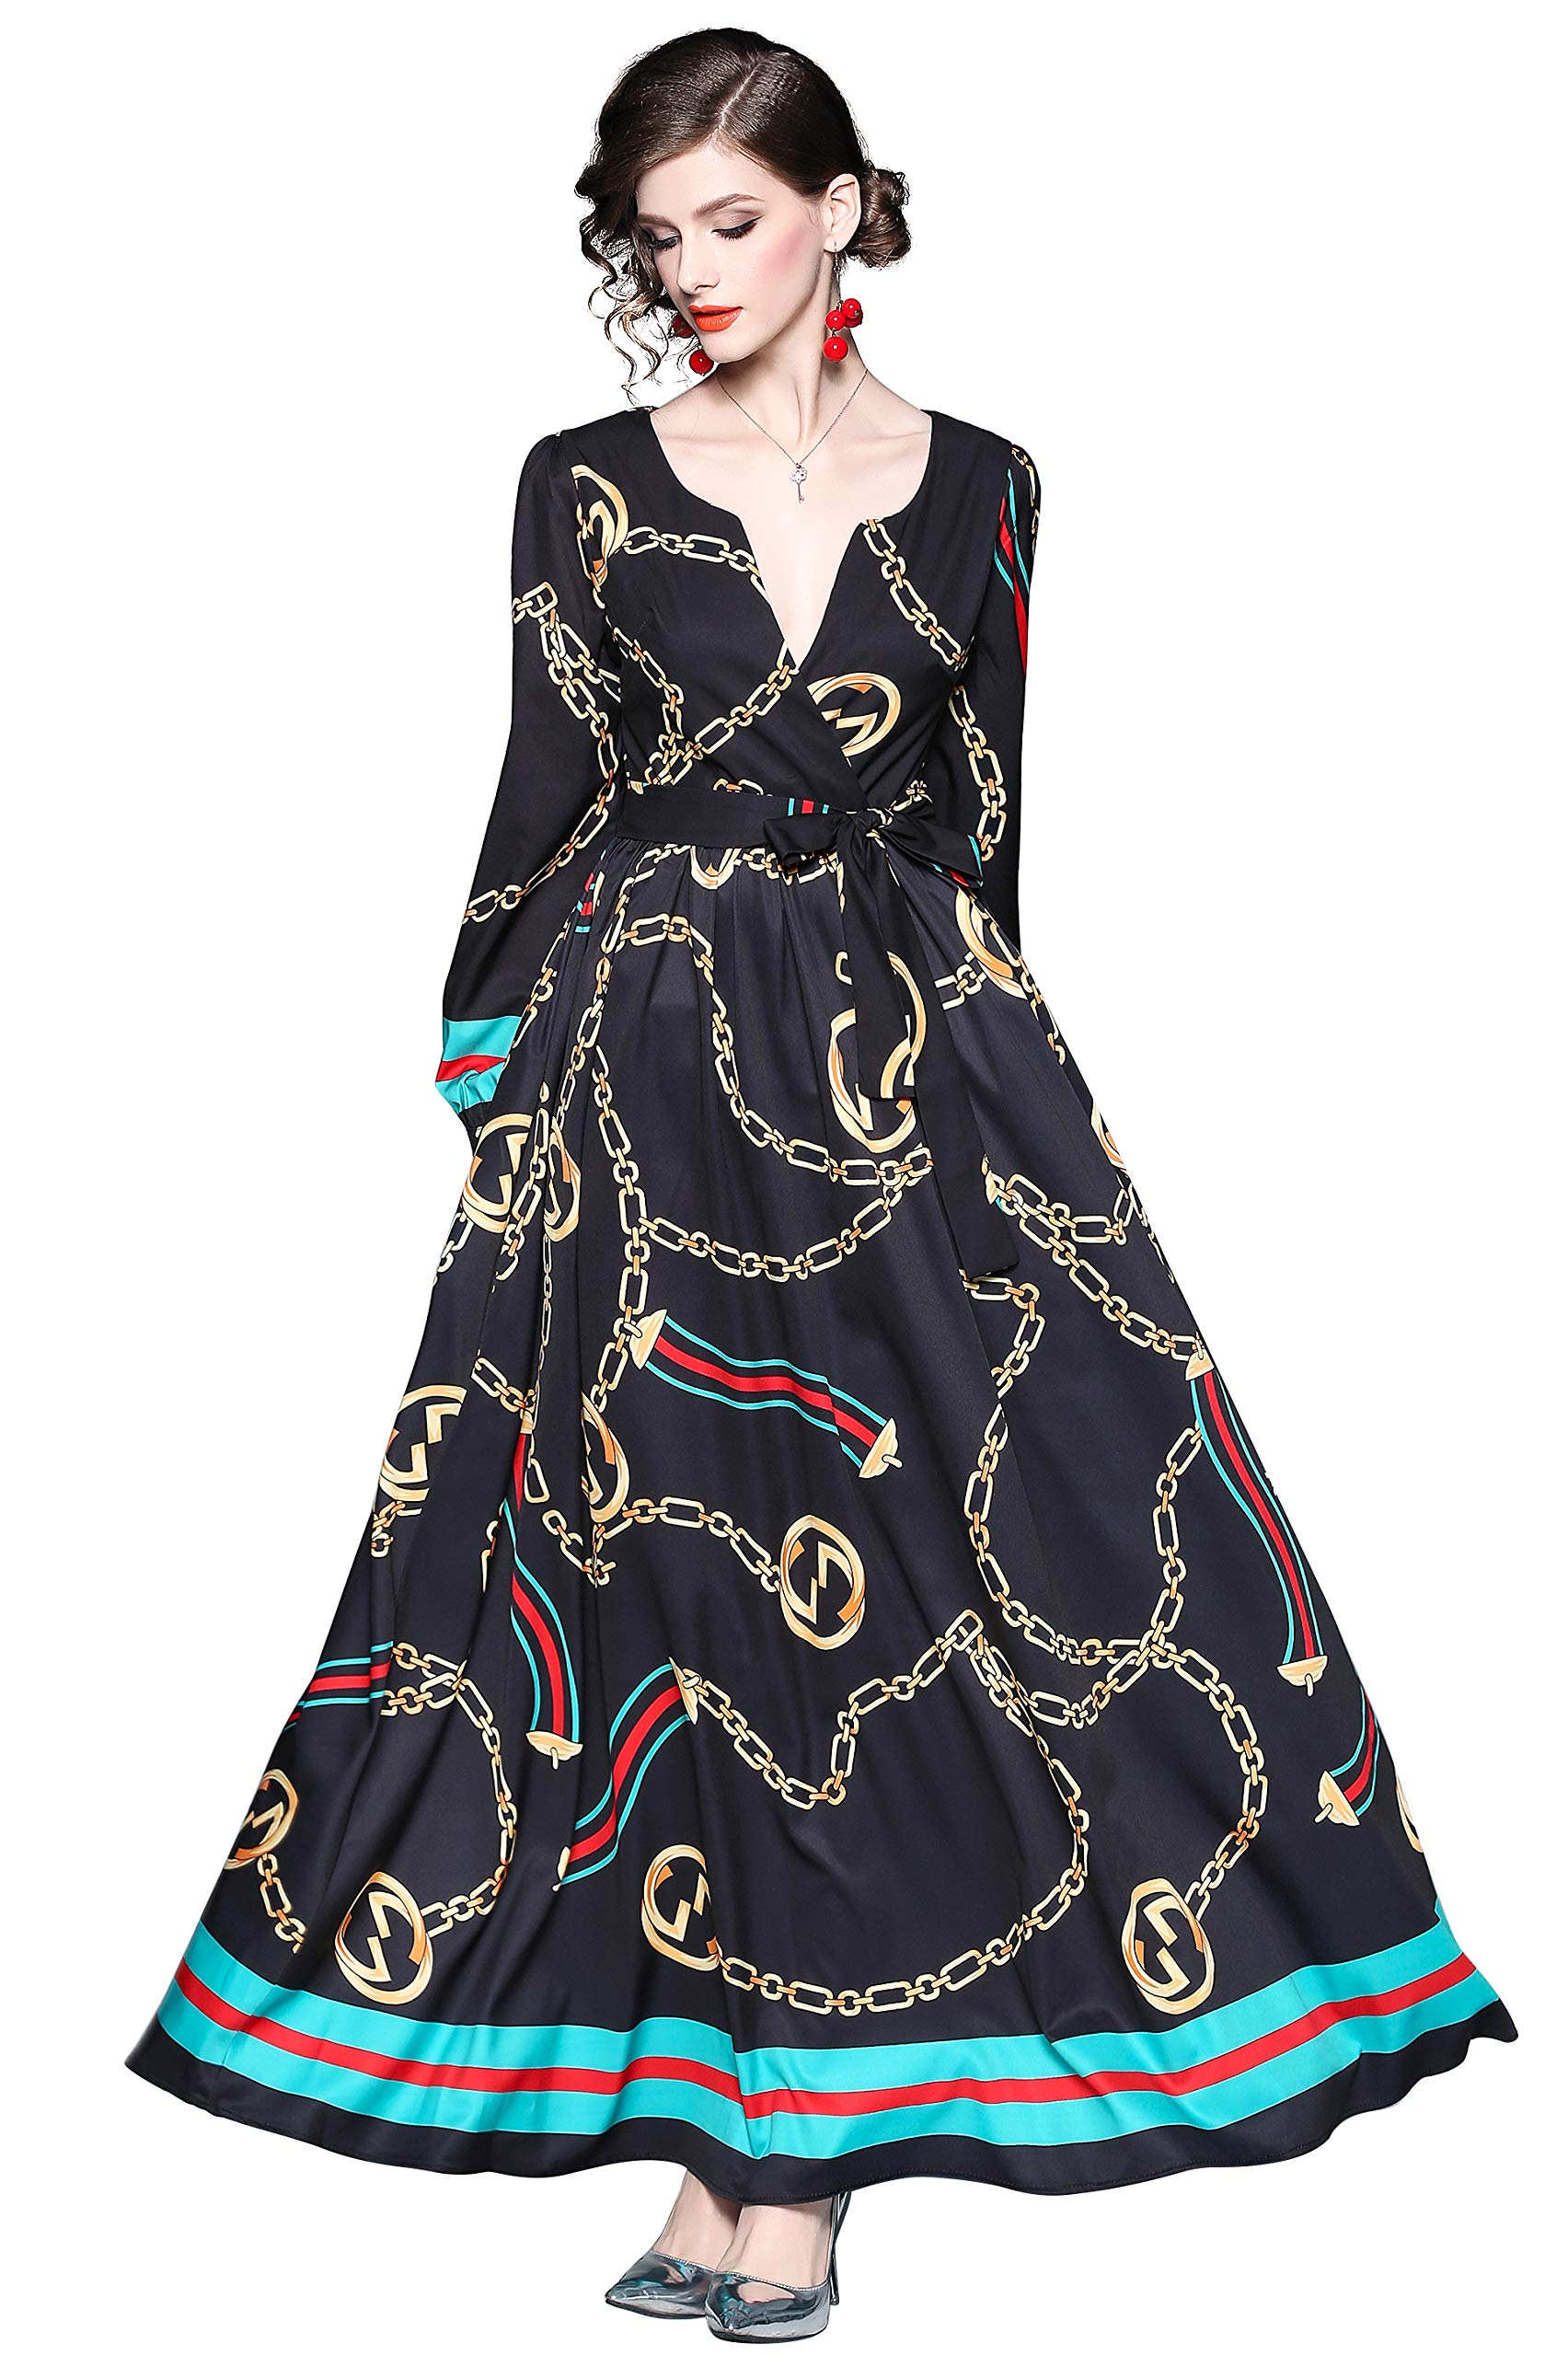 Available at Amazon: LAI MENG FIVE CATS Women's V Neck Baroque Print Big Swing Maxi Dress with Belt for PartyEvening